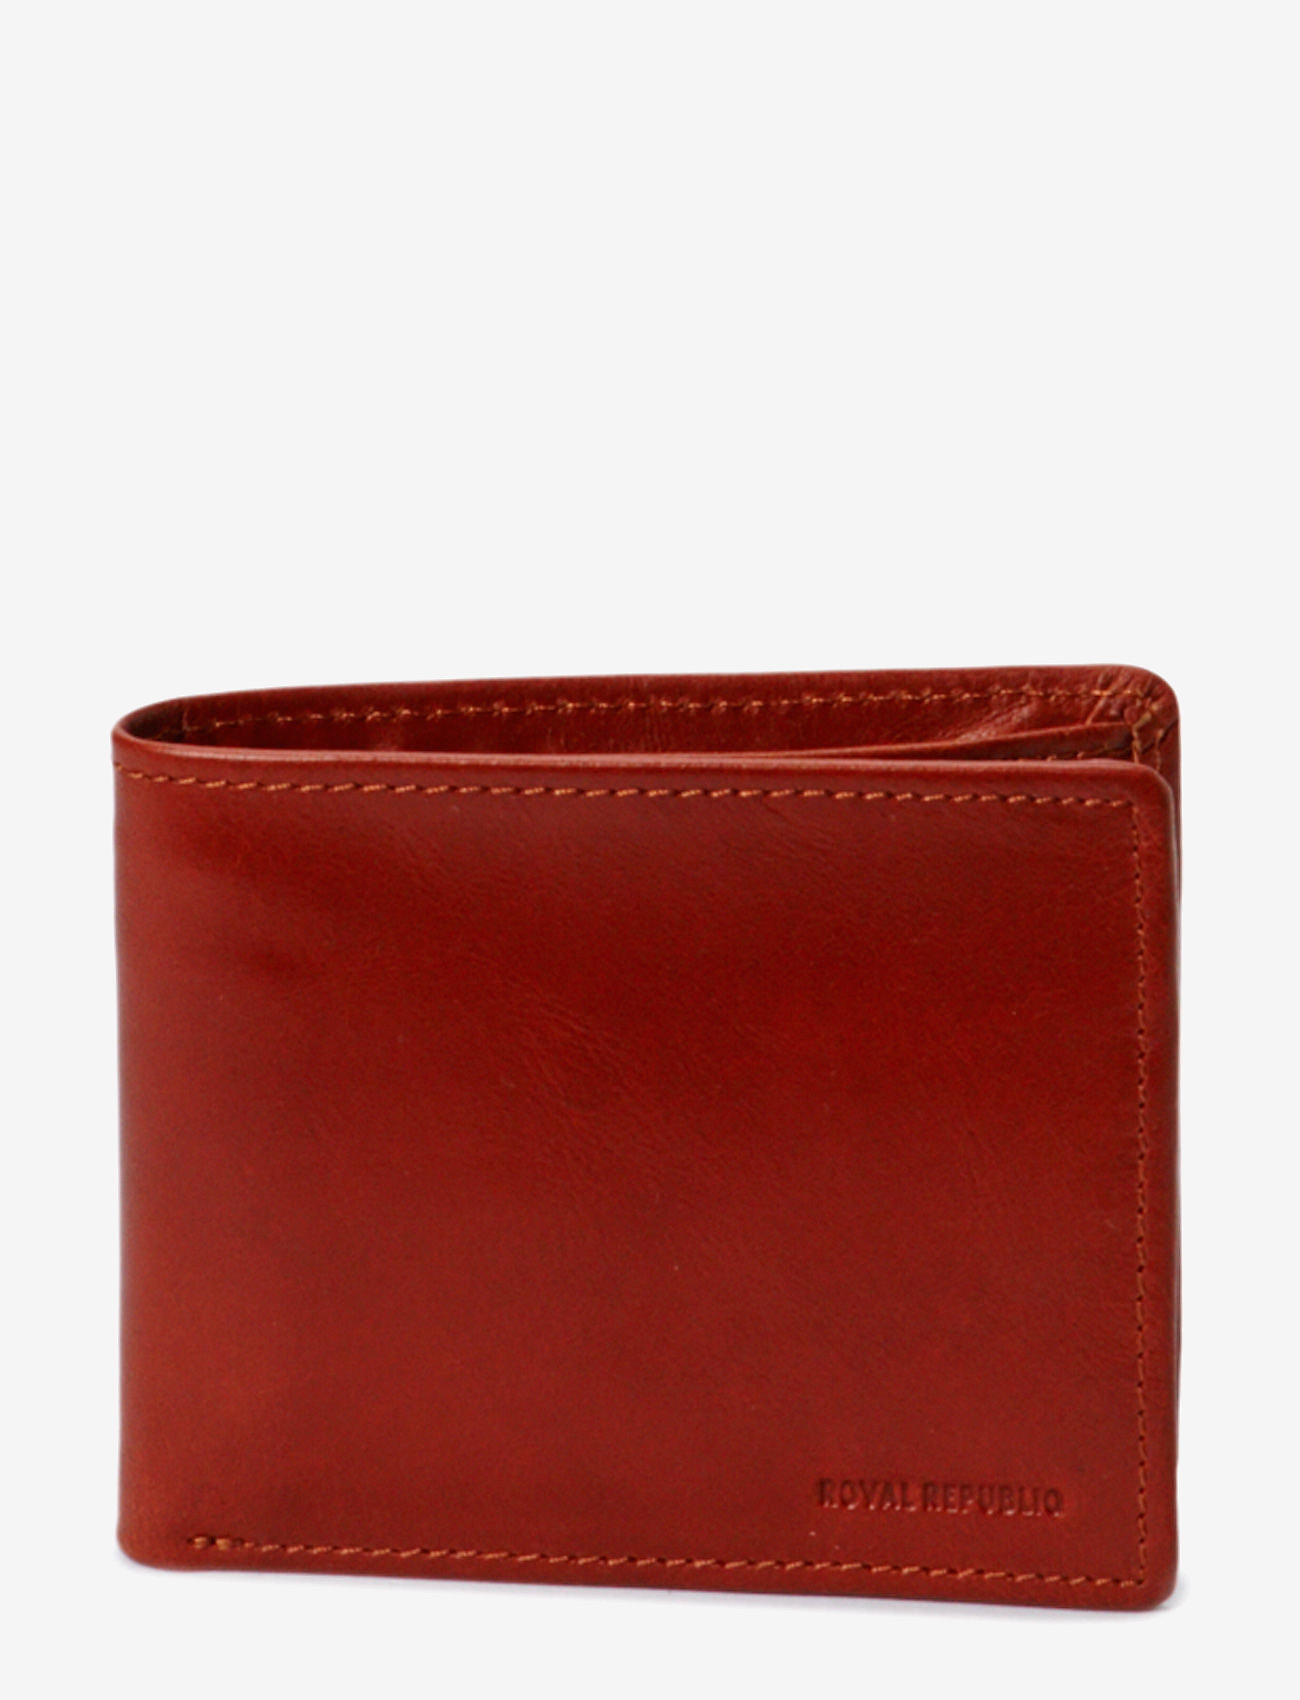 Royal RepubliQ - City wallet - classic wallet - cognac